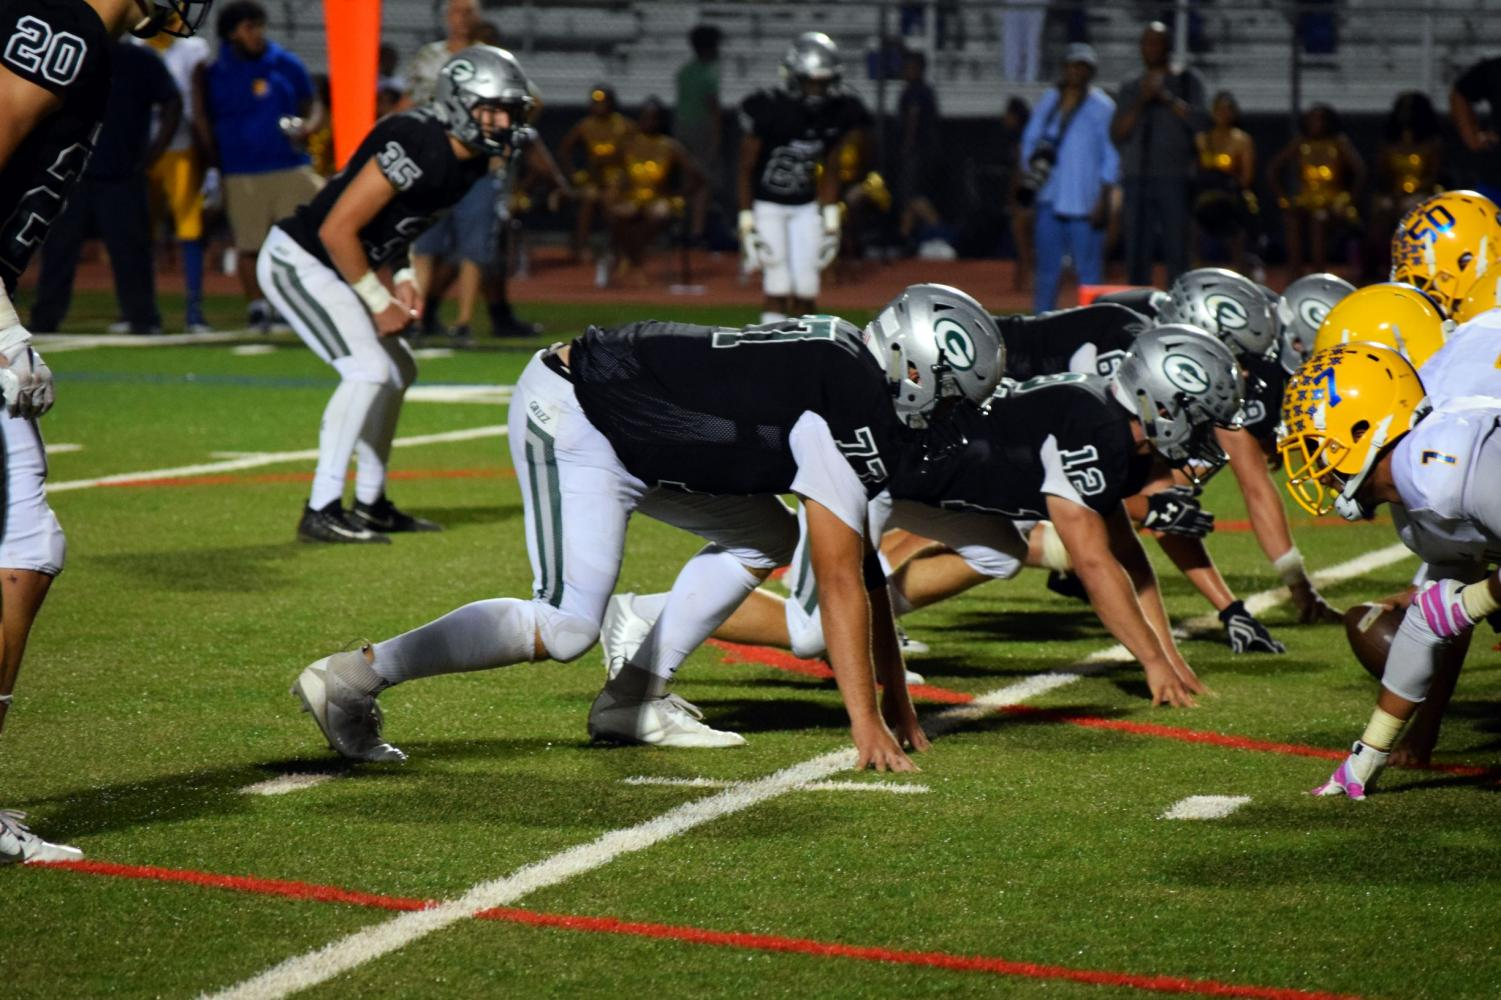 Varsity football team squares up on the line.